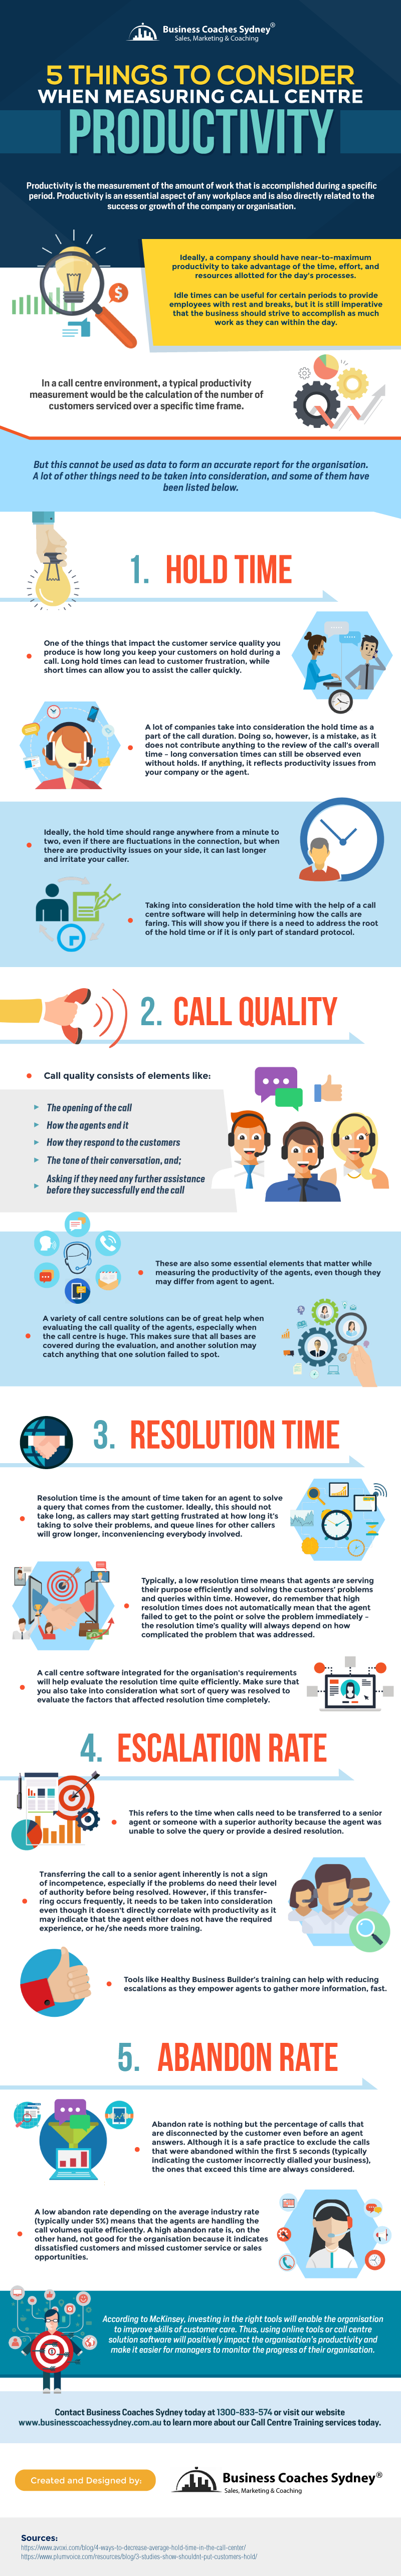 """<img class=""""aligncenter wp-image-310 size-full"""" src=""""https://businesscoachessydney.com.au/wp-content/uploads/2018/03/5-Things-to-Consider-When-Measuring-Call-Centre-Productivity.png"""" alt="""""""" width=""""800"""" height=""""5141"""" />"""